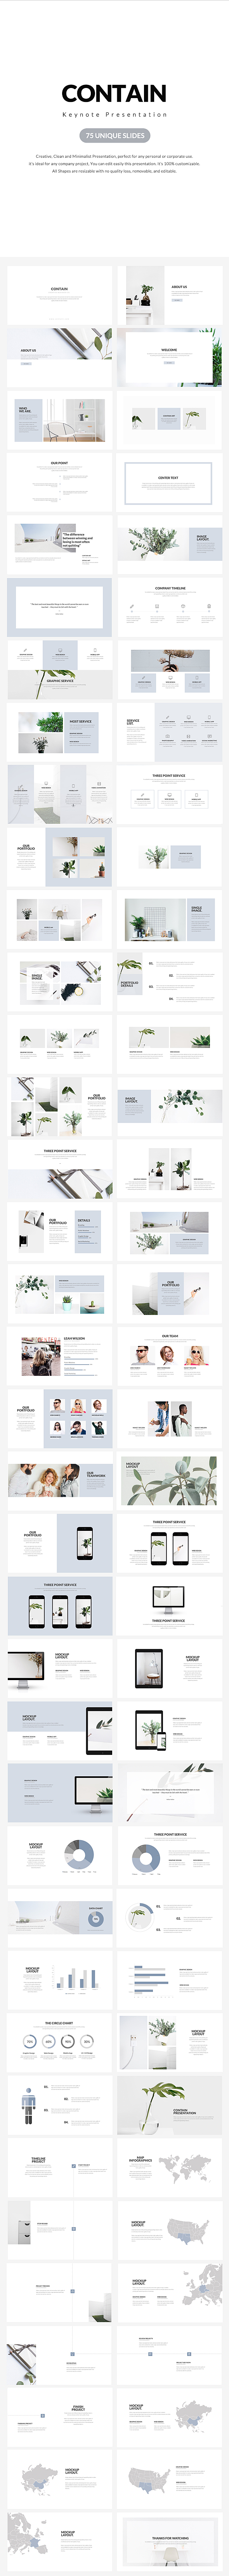 Contain Keynote Presentation - Creative Keynote Templates